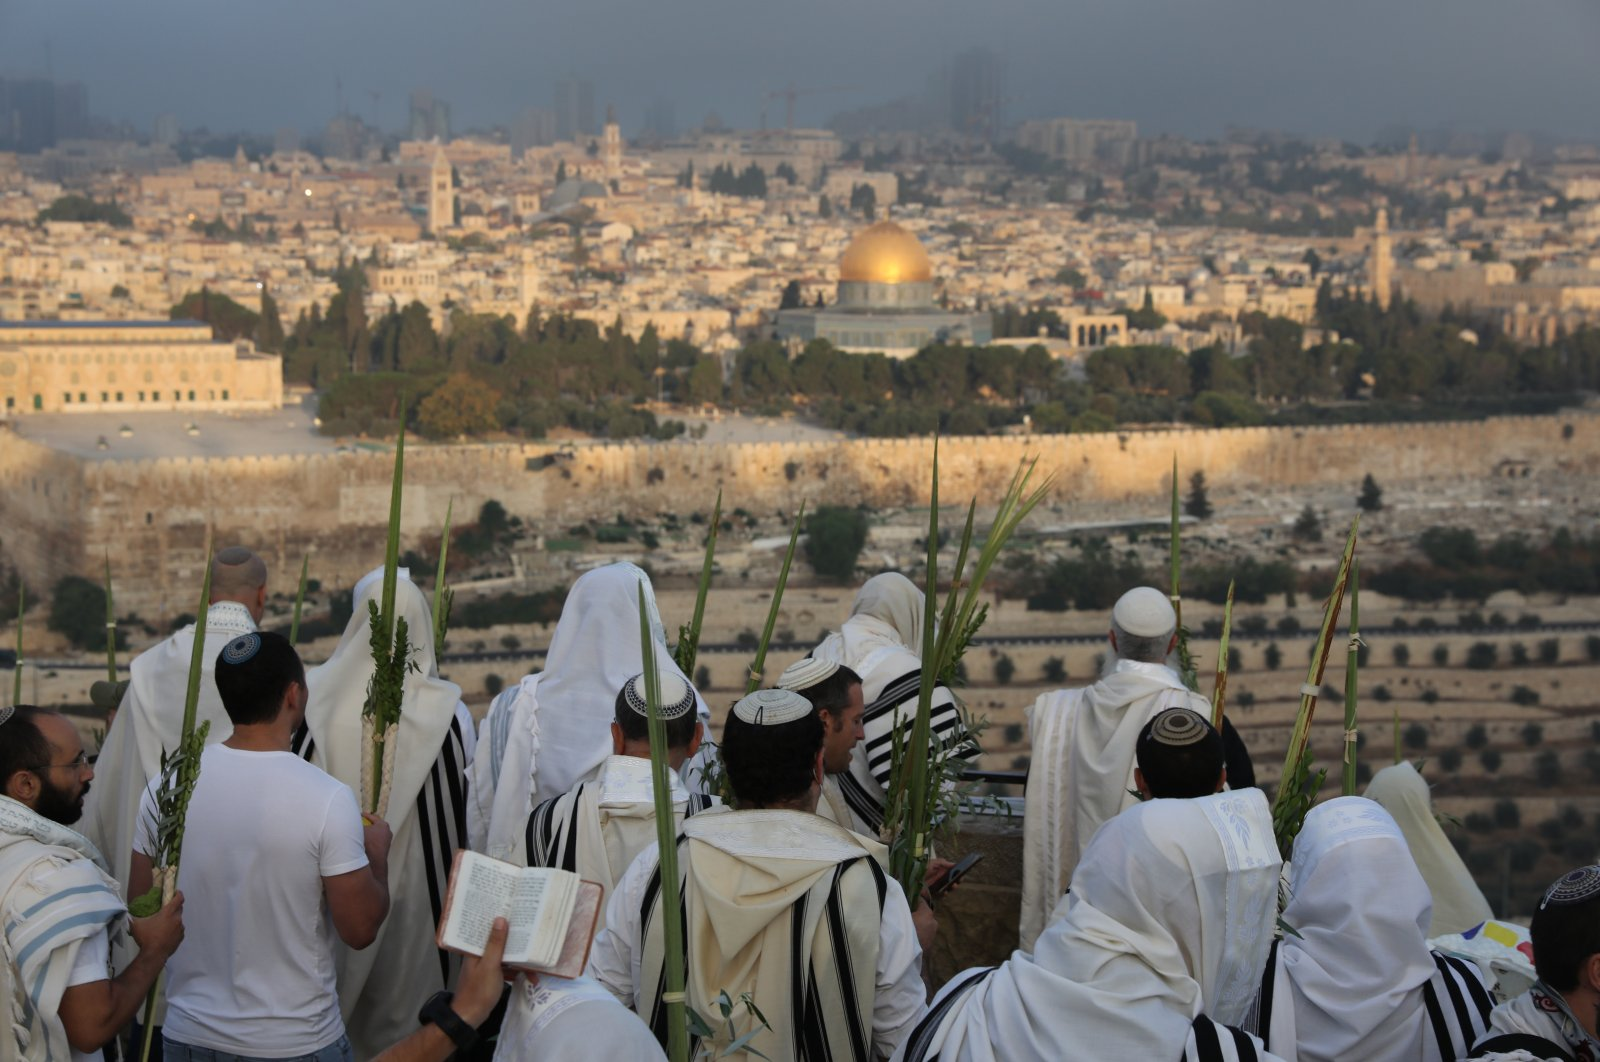 """Orthodox Jews wearing prayer shawls and carrying the """"four species"""" (the four plants that are mentioned in the Torah as being relevant to Sukkot) pray during a special prayer called """"Hoshana Raba"""" as part of the celebration of the seventh day of Sukkot, the Feast of the Tabernacles, in the Mount of Olives with a view of the Old City of Jerusalem, Israel, Sept. 27, 2021. (EPA Photo)"""